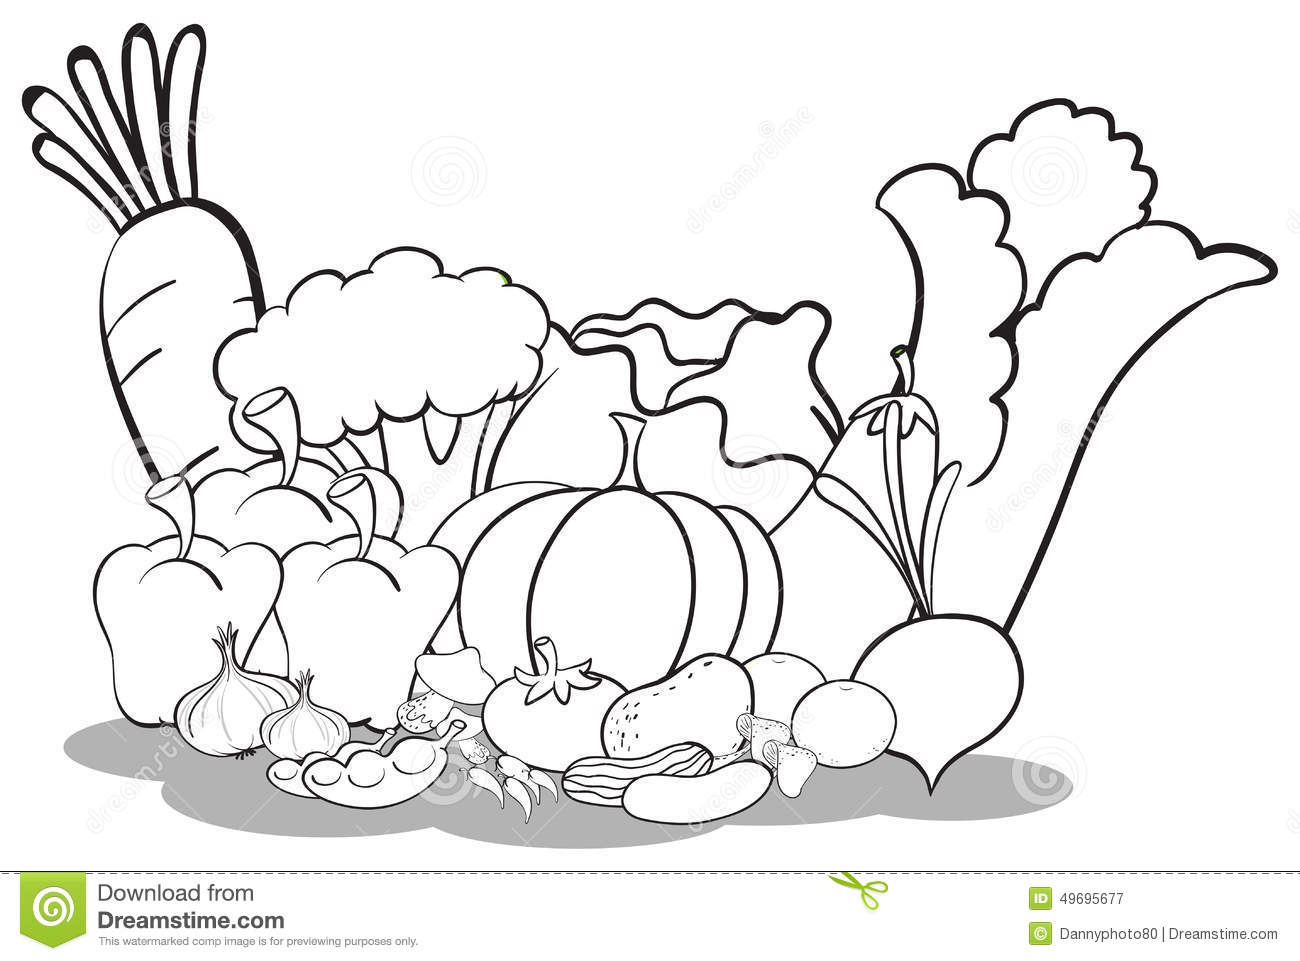 Clipart Vegetables And Fruits Black And White.